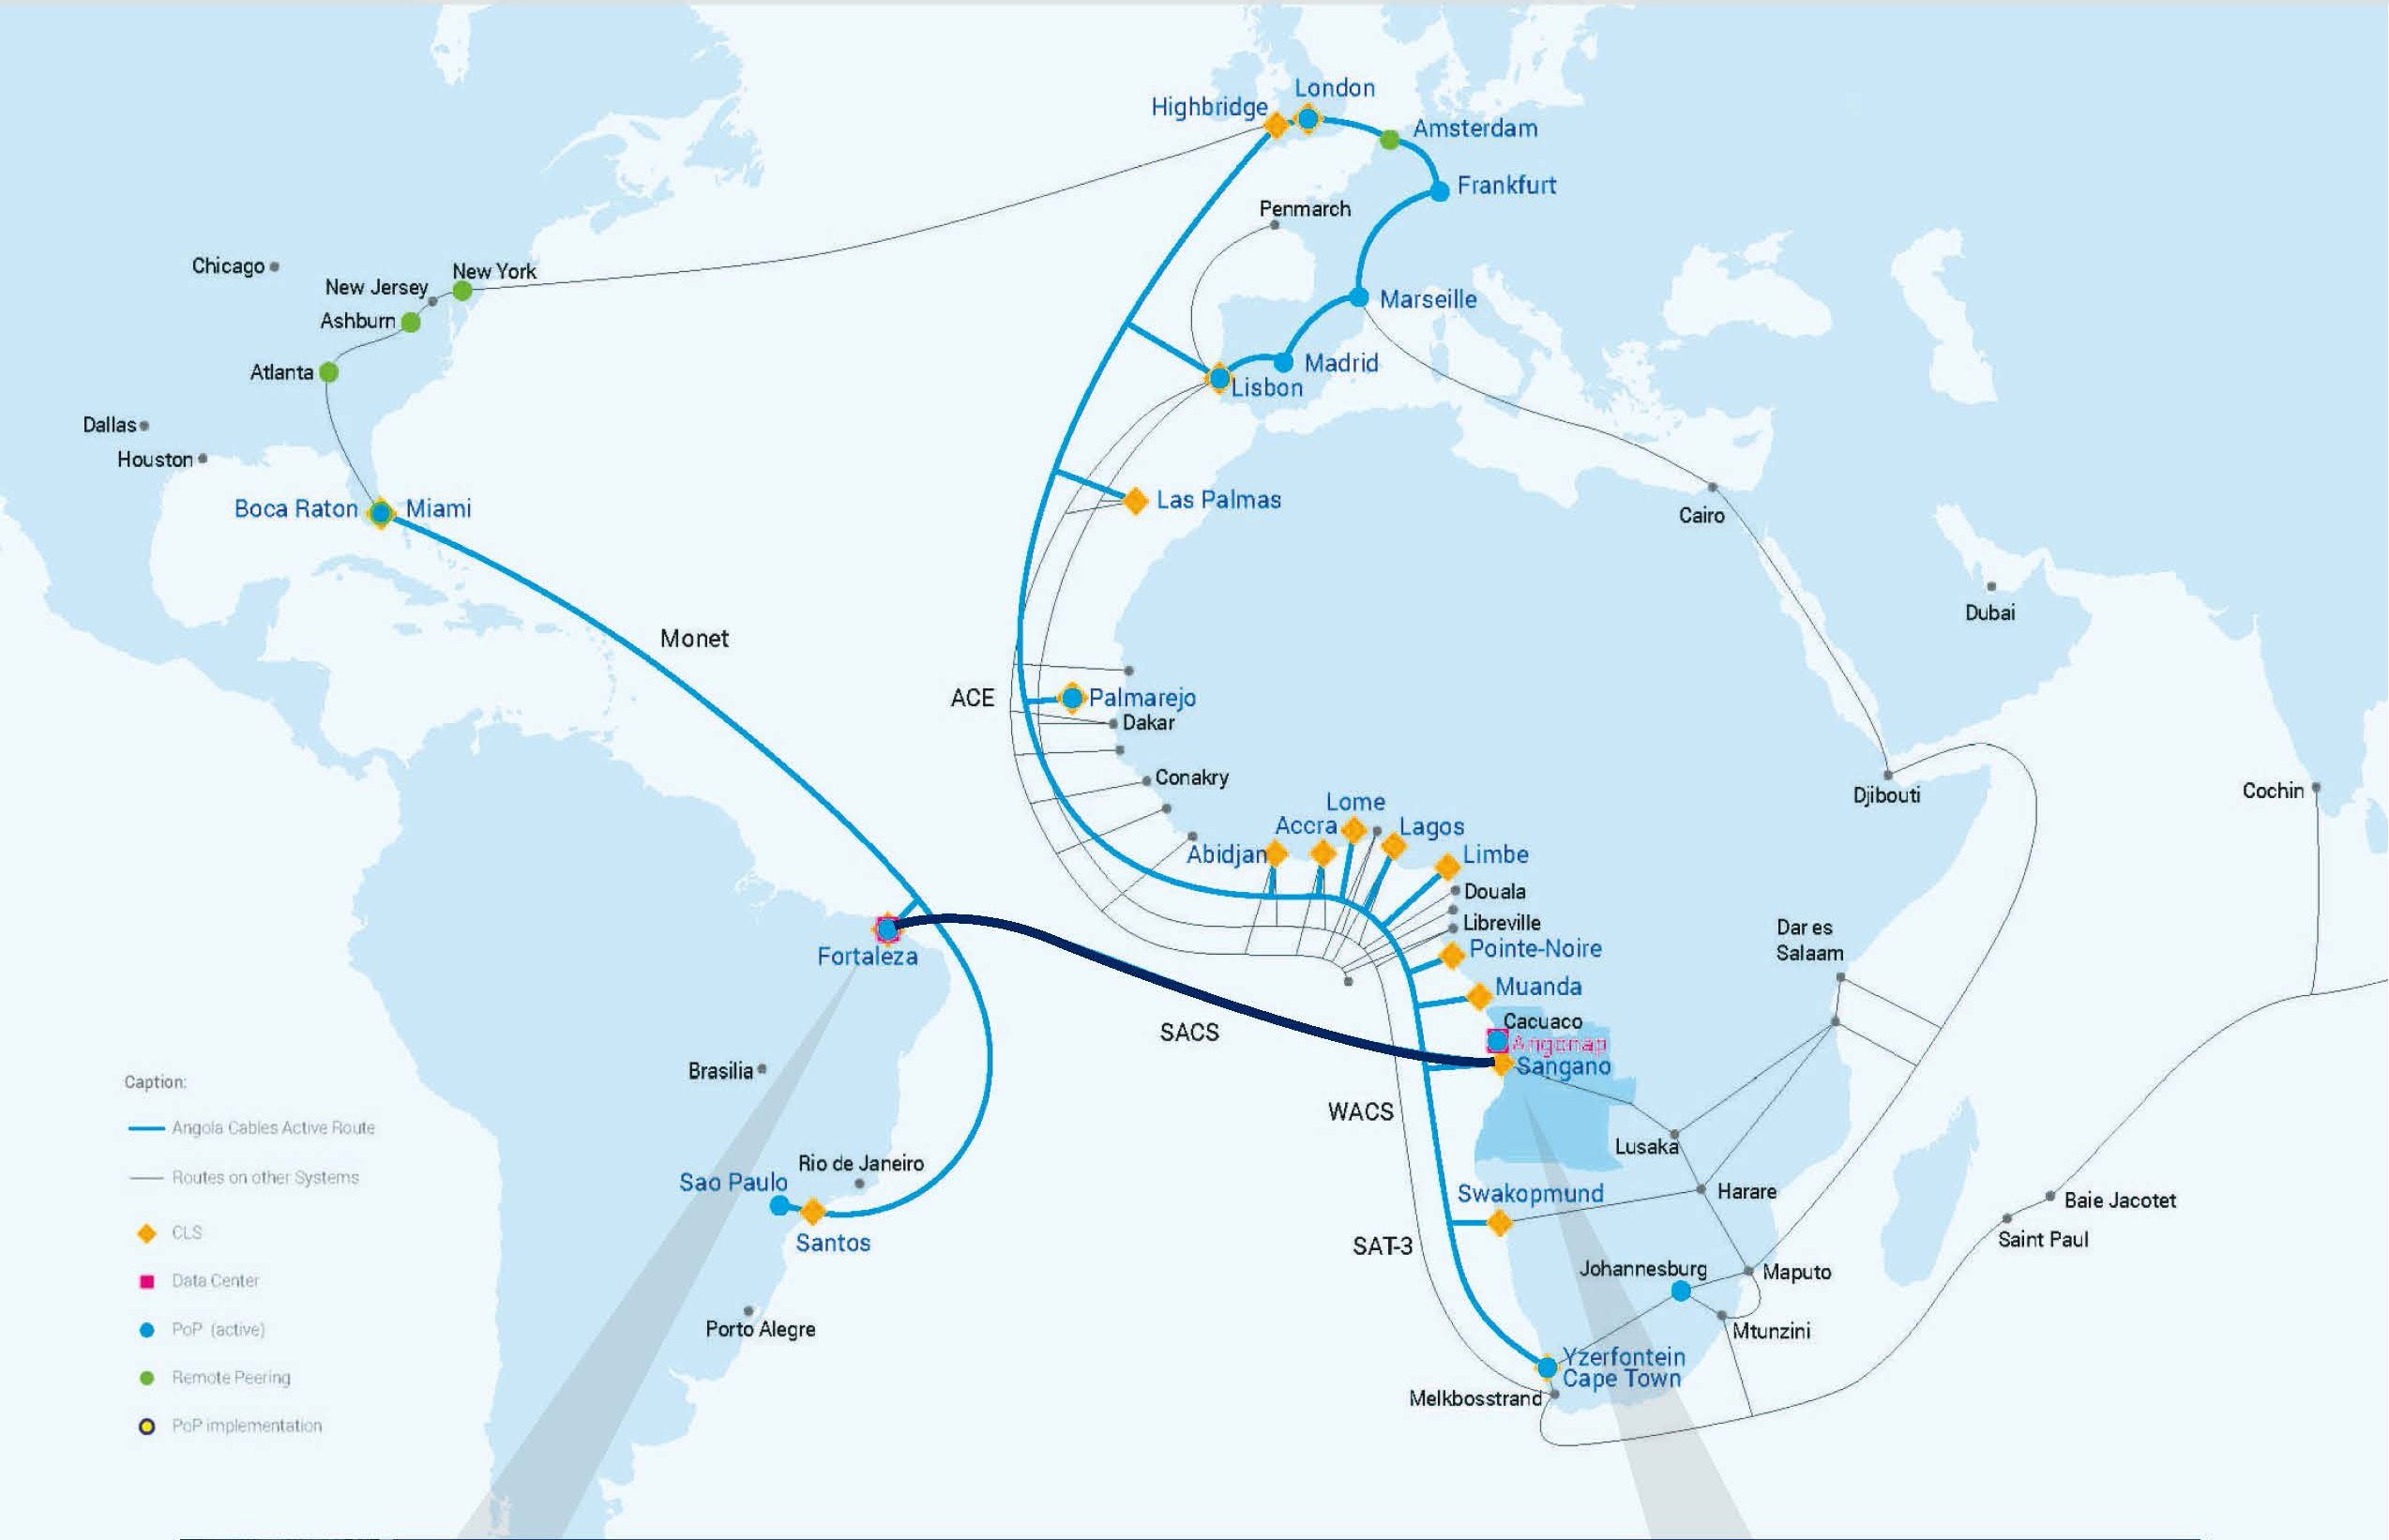 Angola On Africa Map.Angola Cables Lights Up World S First Submarine Cable Linking Africa